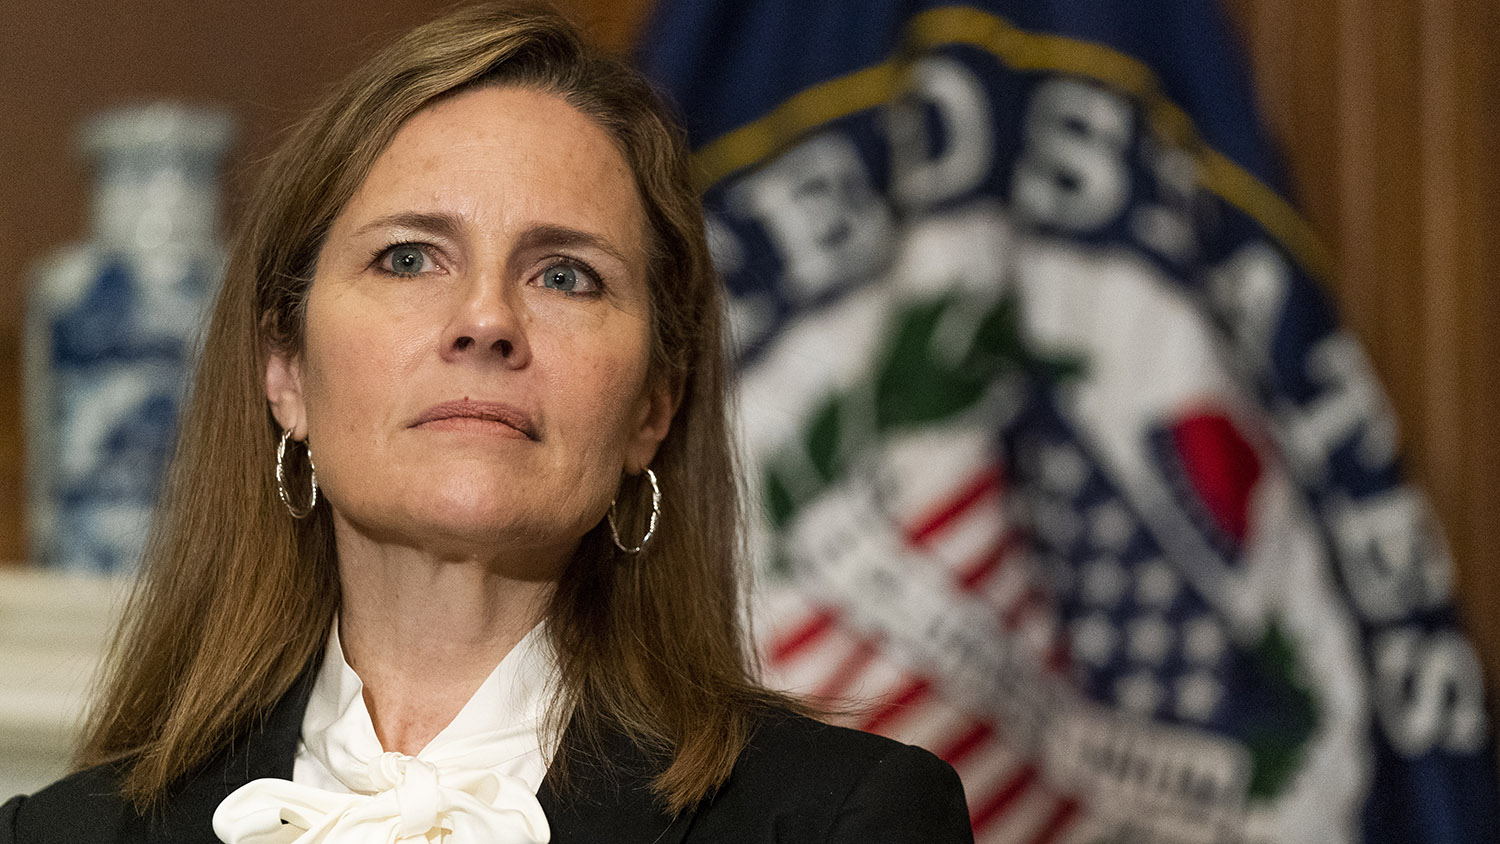 Judiciary Dems say Amy Coney Barrett's supplemental questionnaire 'raises more questions than it answers' – Fox News